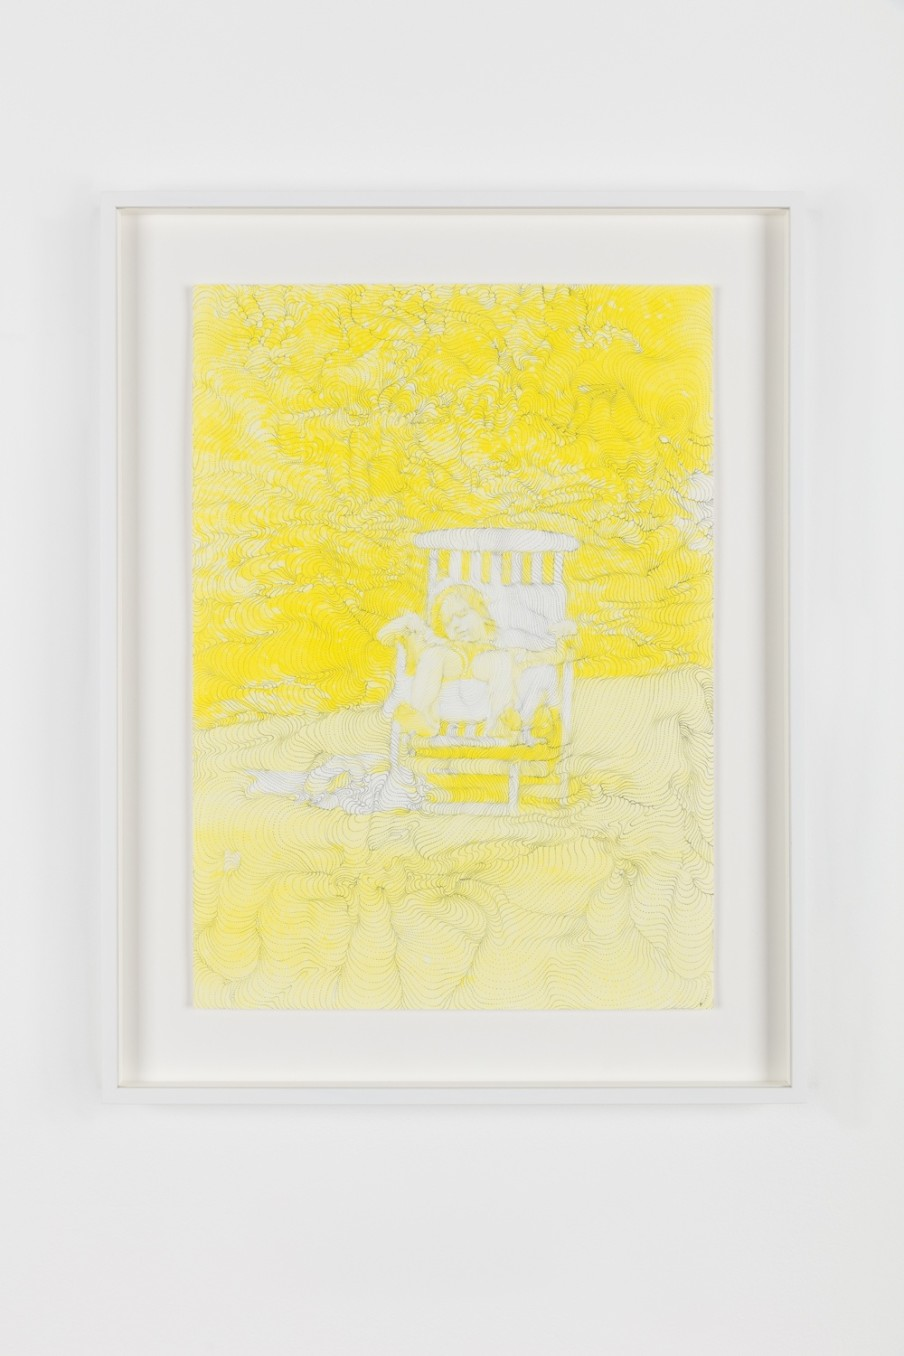 Sebastiaan Bremer, Yellow Lead, 2017, Epson hot press matte paper with pigment ink, 48.3 x 34 cm, 19 x 13 3/8 in, Framed: 56 x 43.3 x 3.7 cm, 22 1/8 x 17 1/8 x 1 1/2 in